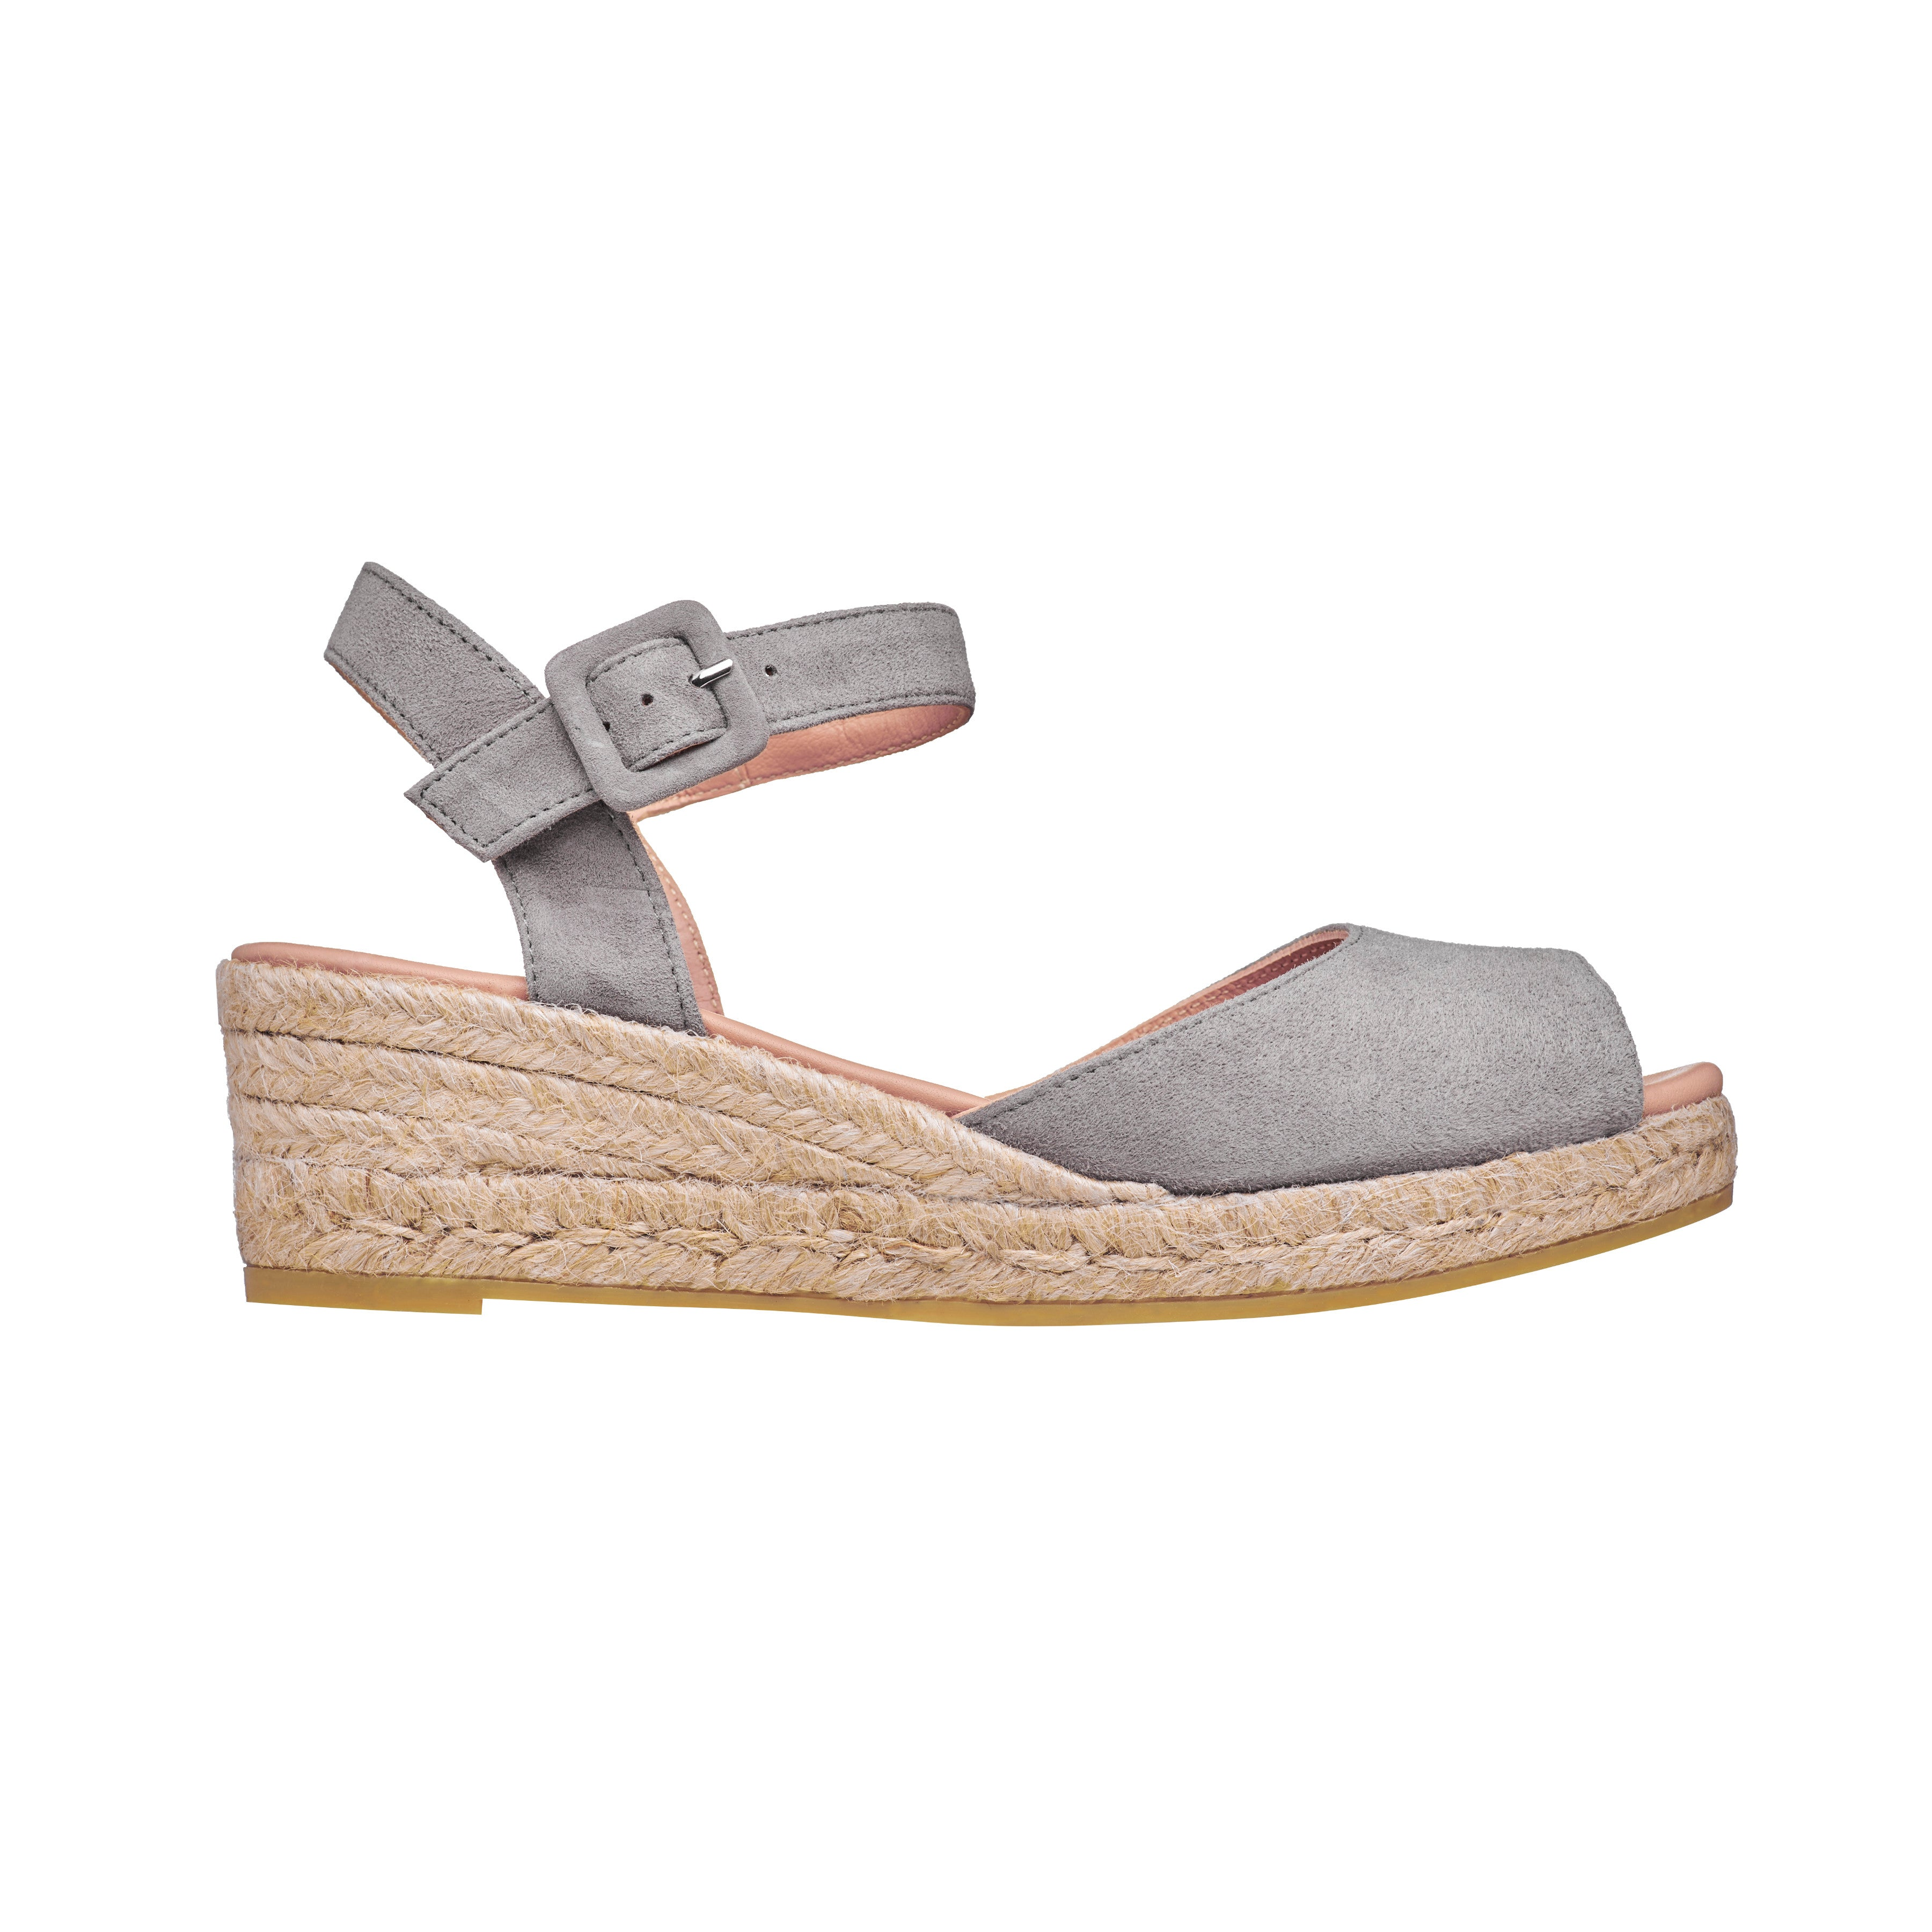 CONO Grey espadrilles [sizes 35, 36, 40, 41 available]